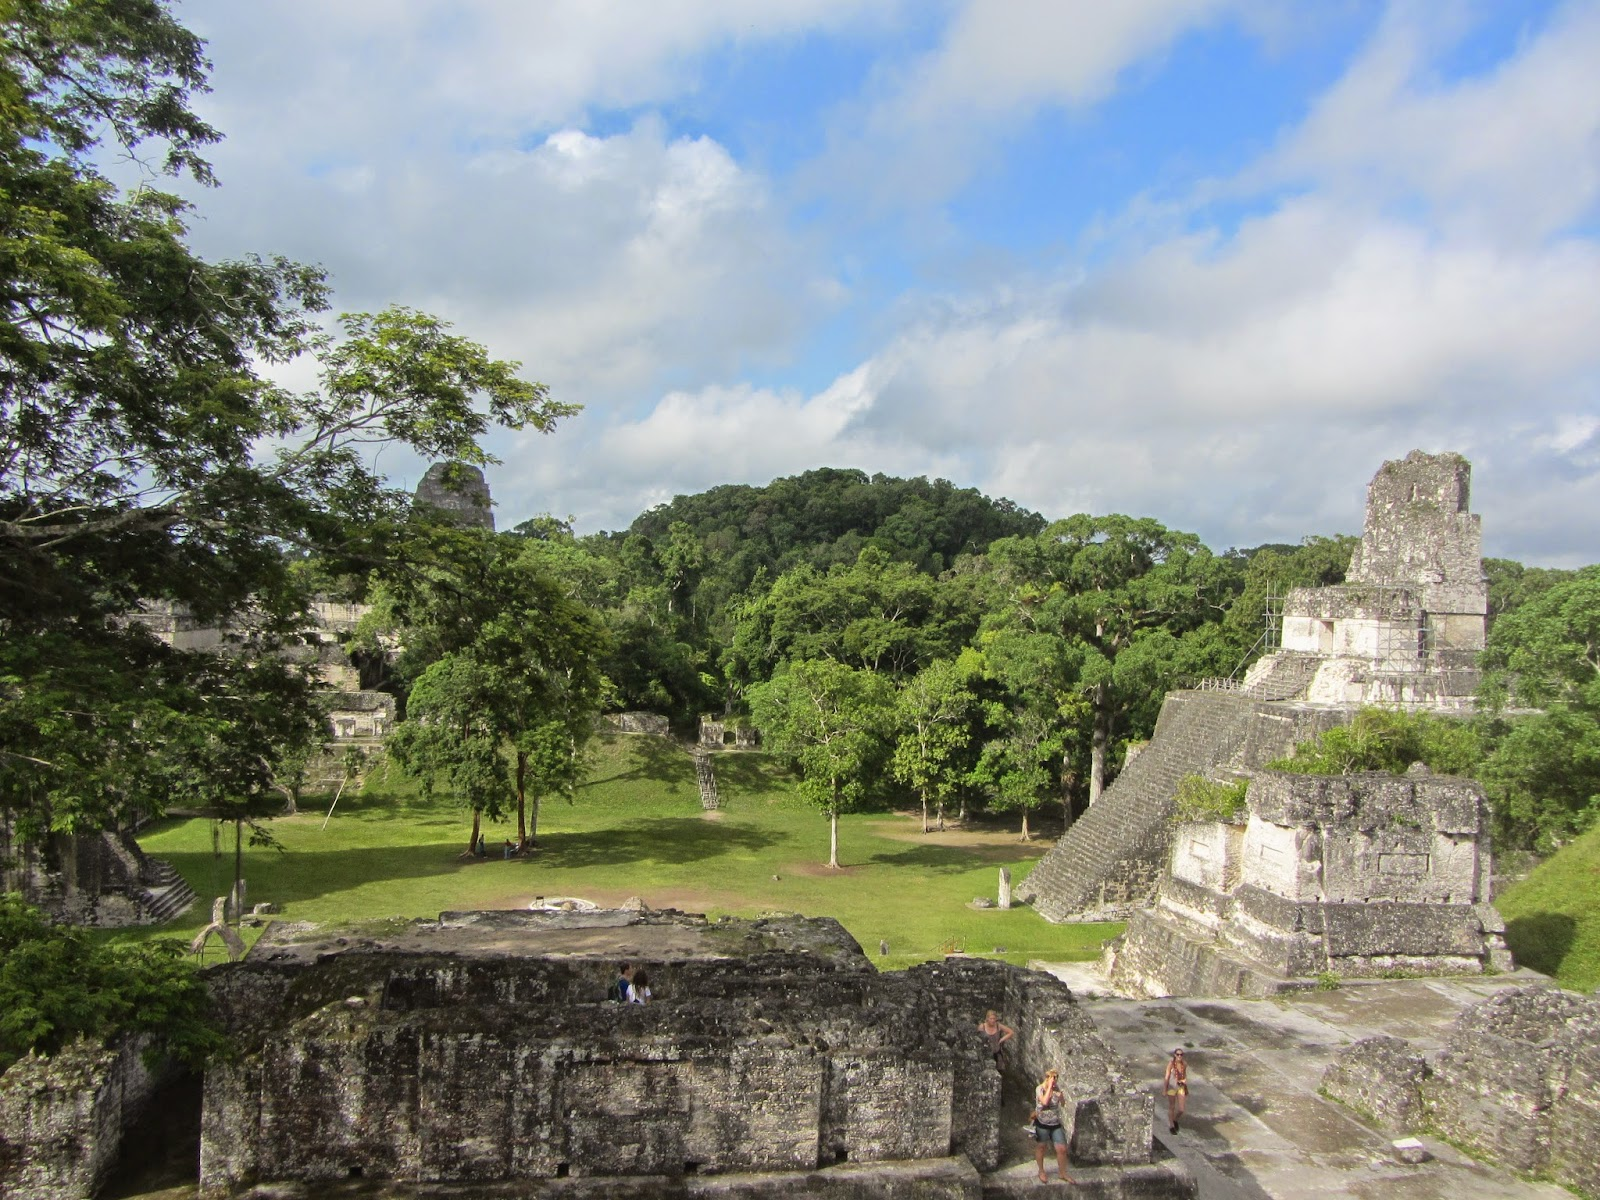 Main plaza at Tikal in Guatemala